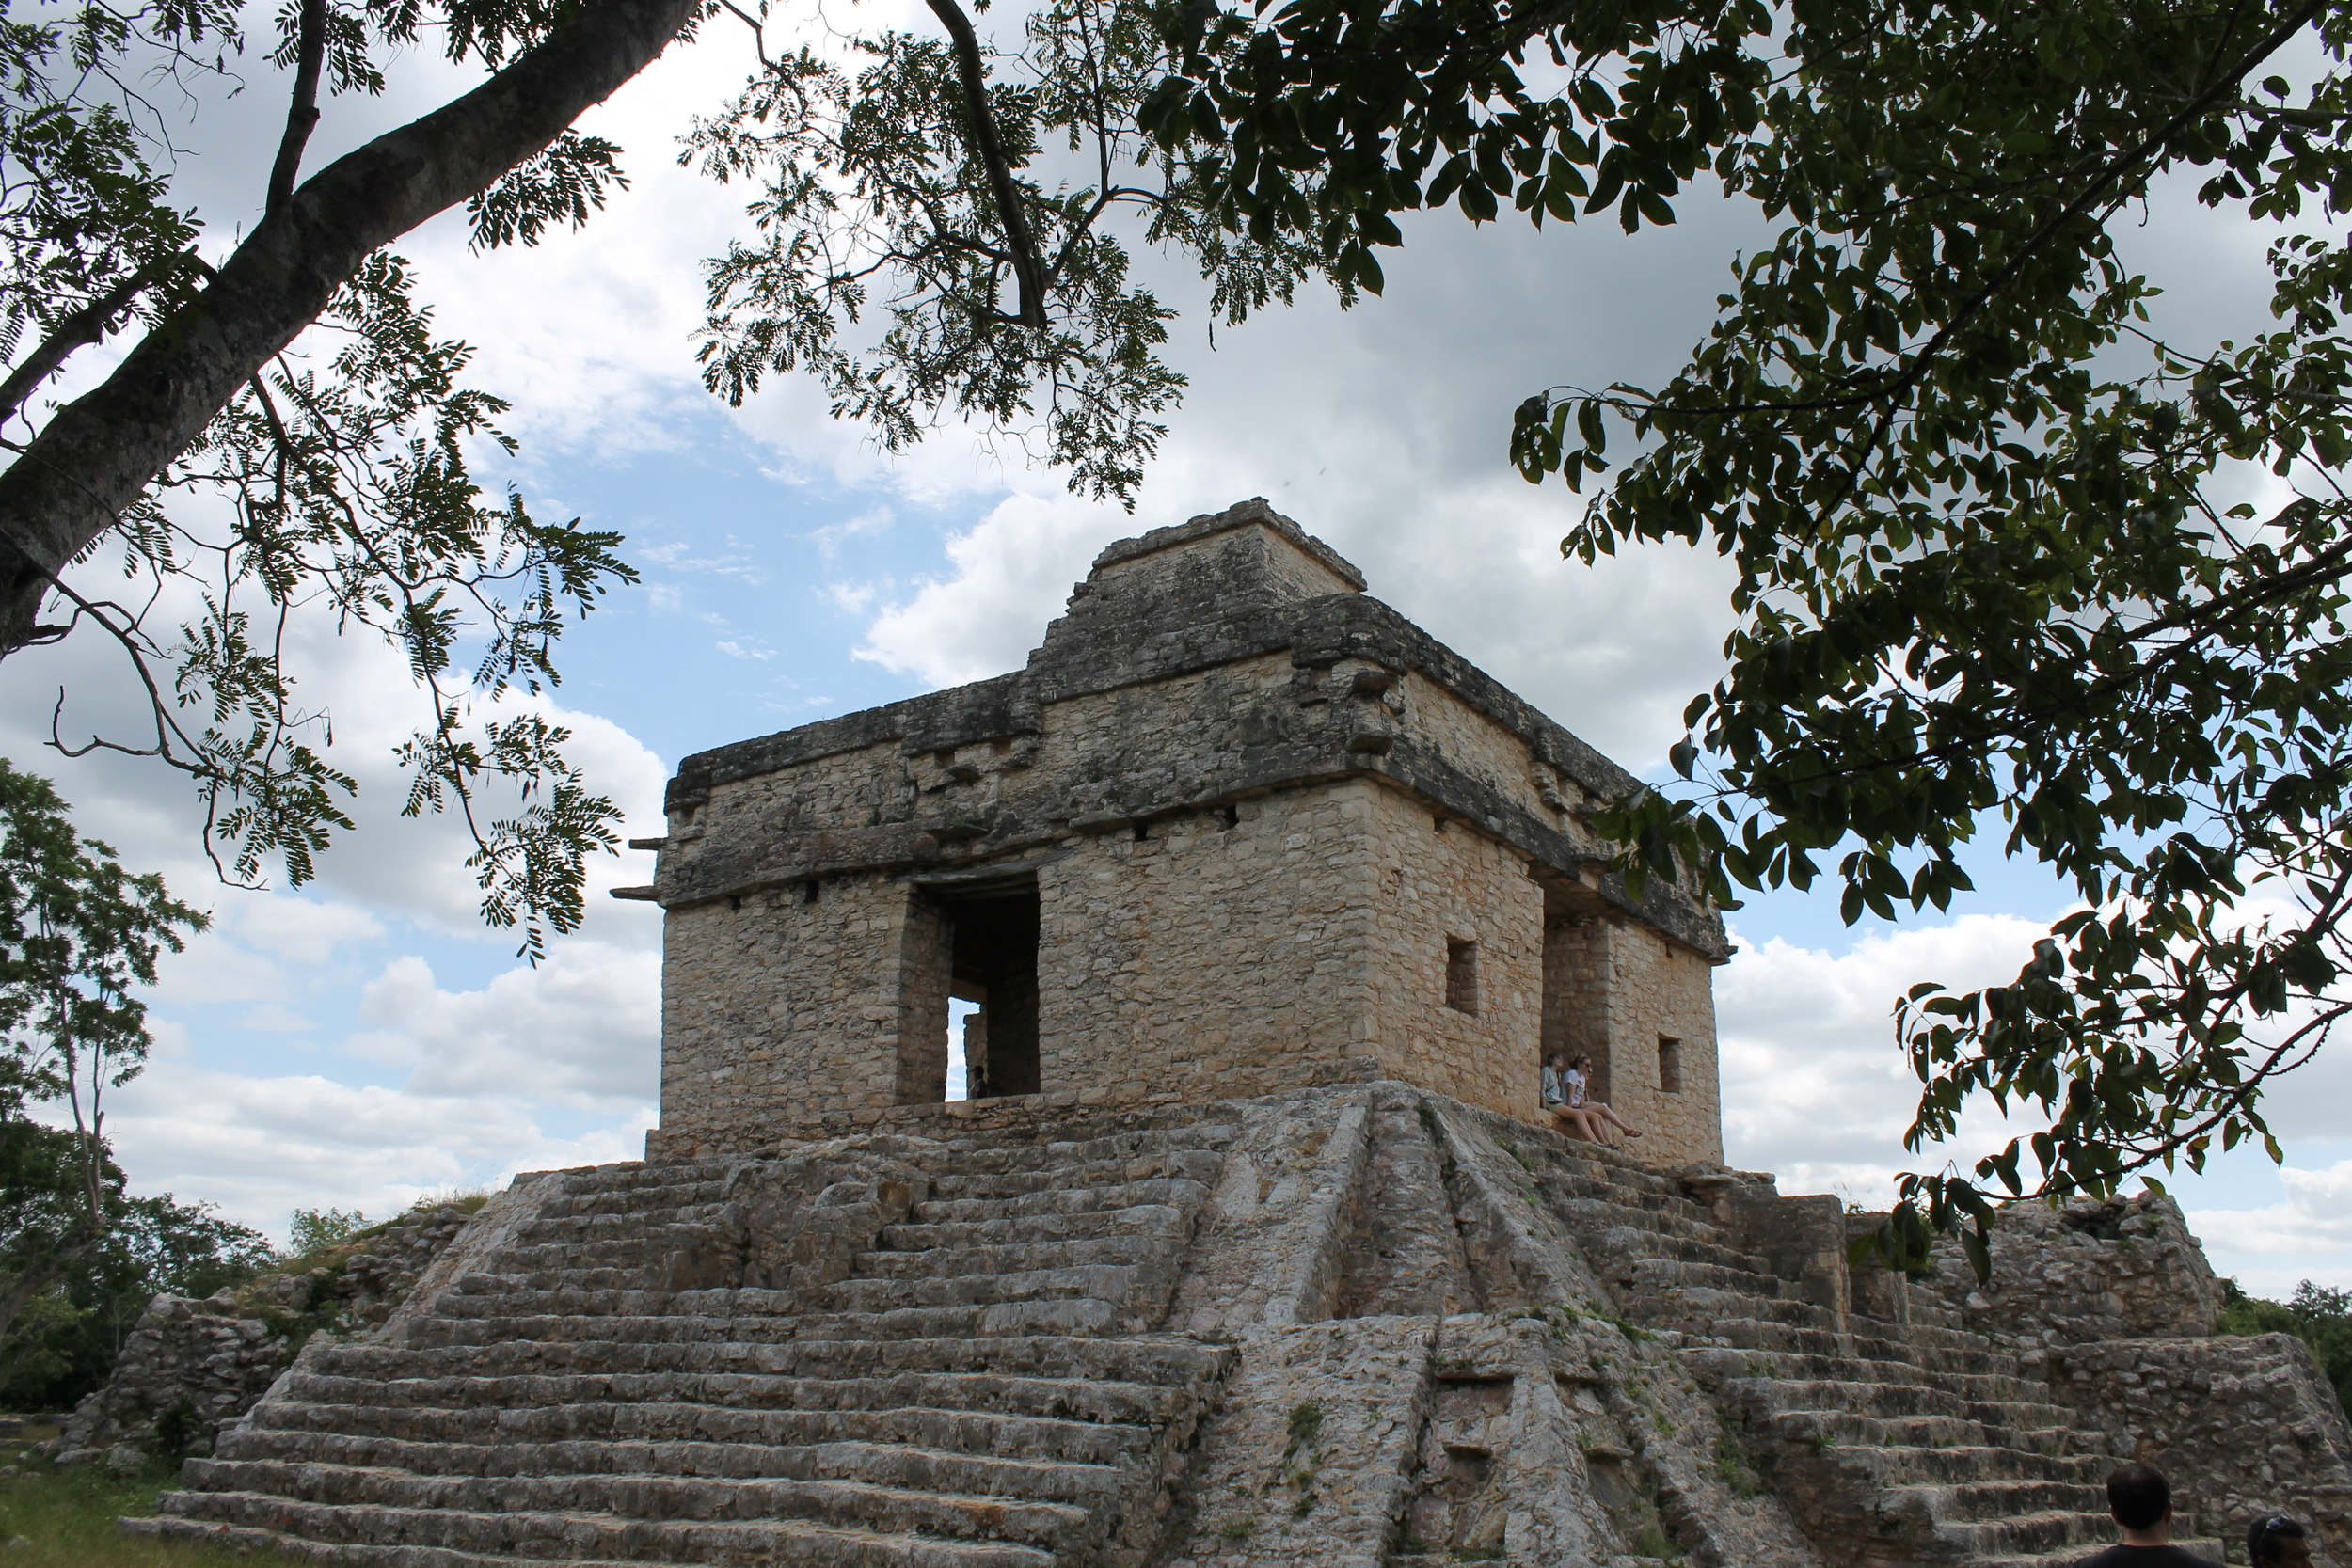 Temple of the Seven Dolls at Dzibilchaltun